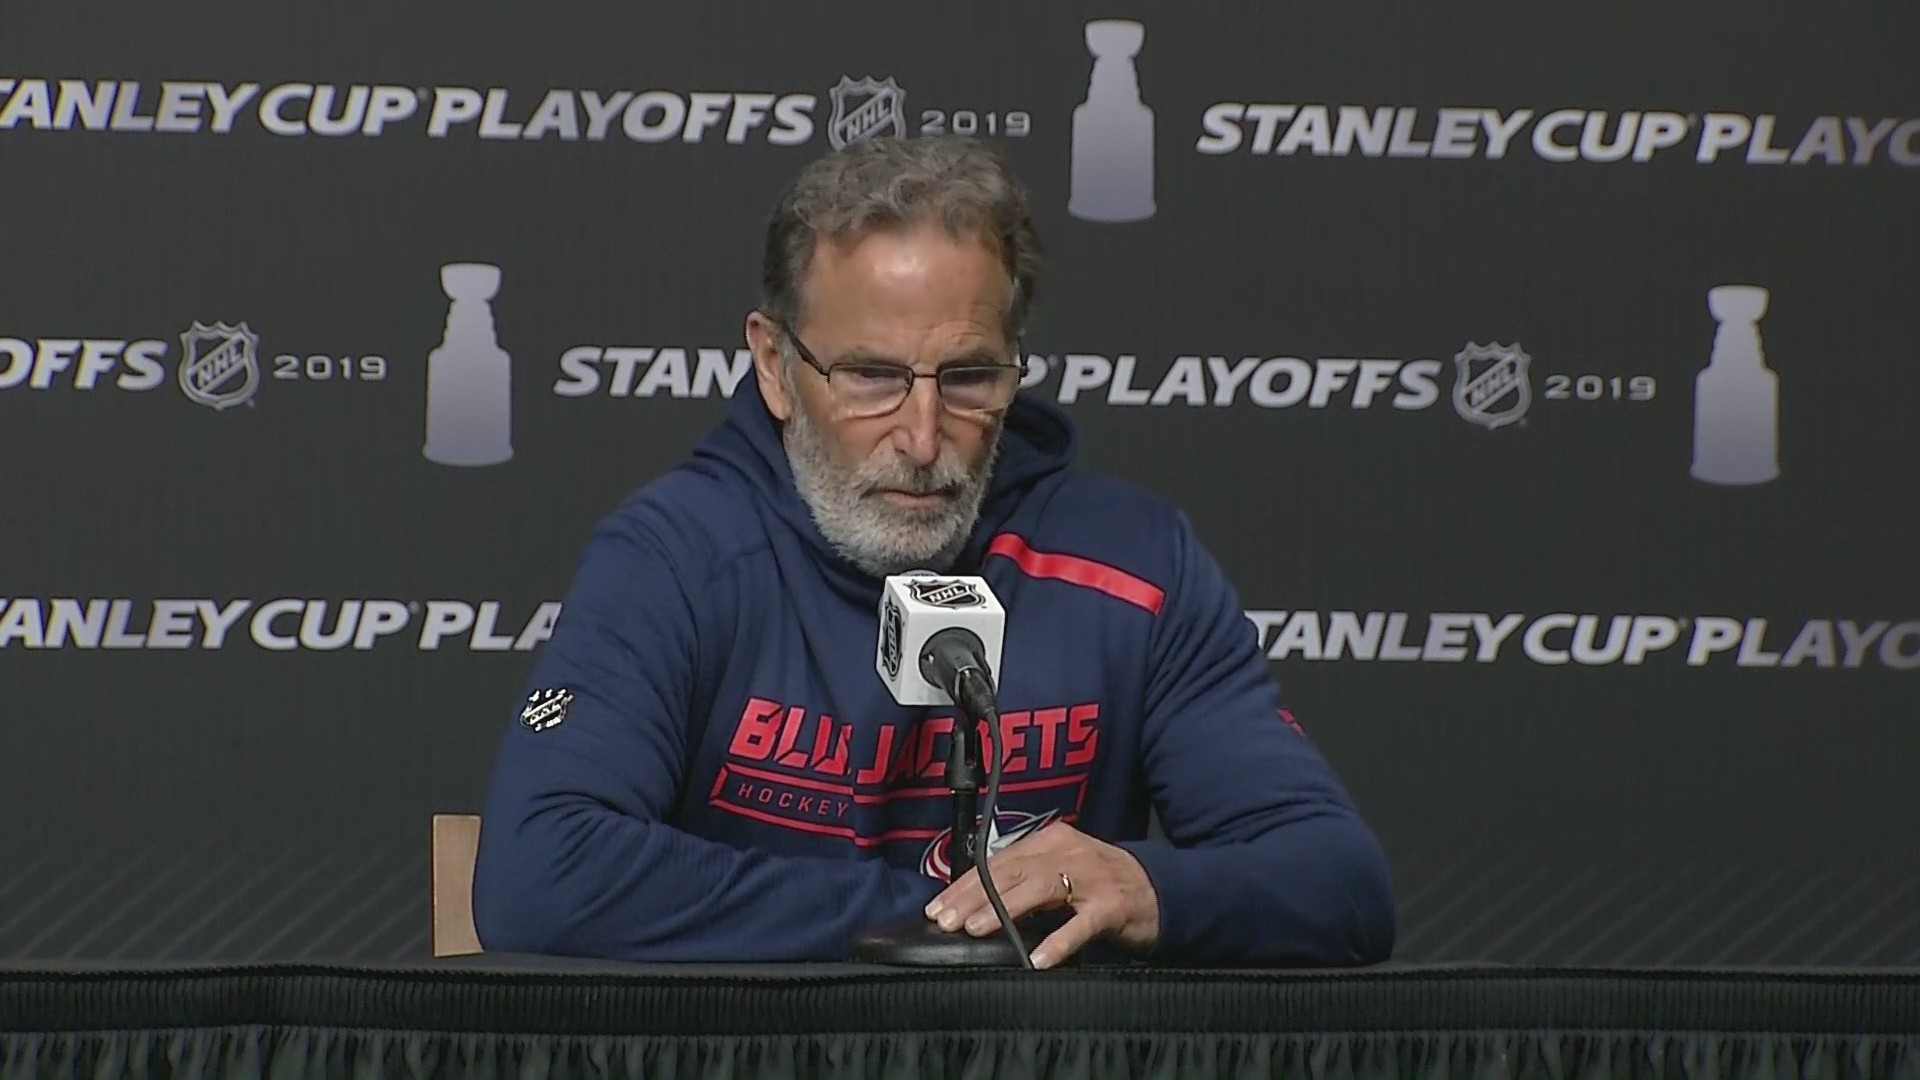 VIDEO: Columbus Blue Jackets head coach John Tortorella speaks before Round 2, Game 2 against Bruins